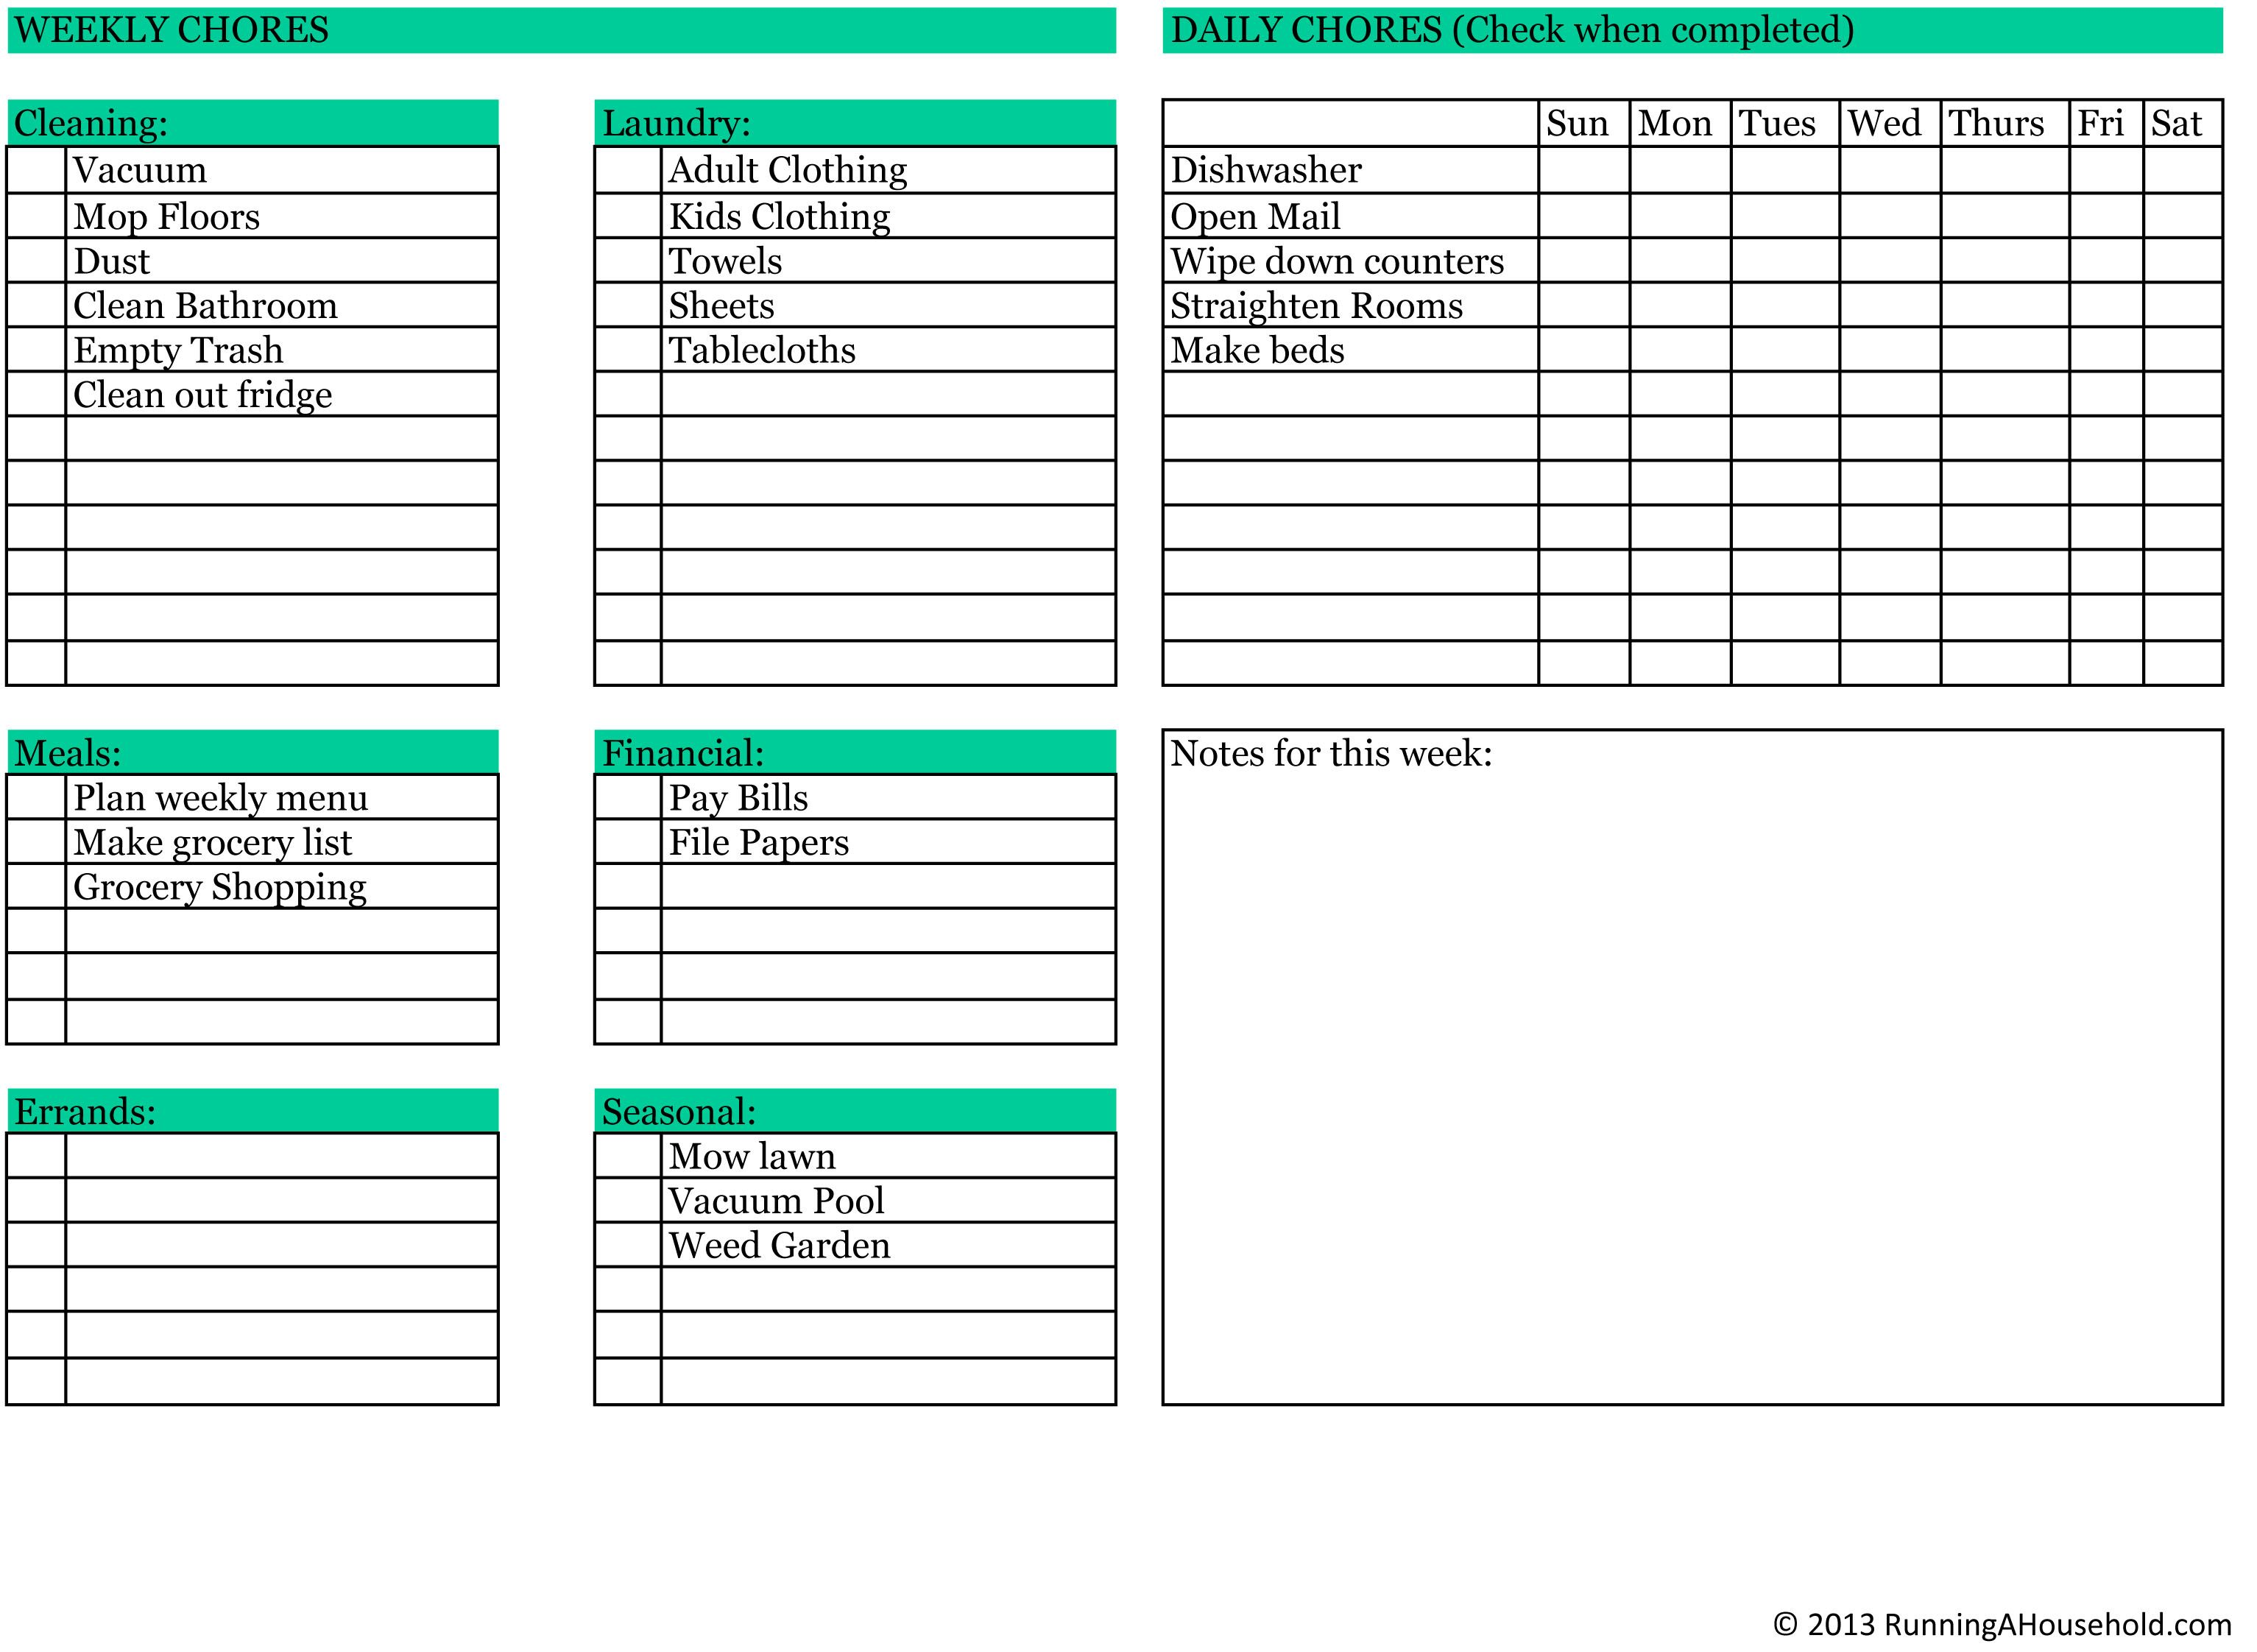 Household Chores Printable Weekly Checklist